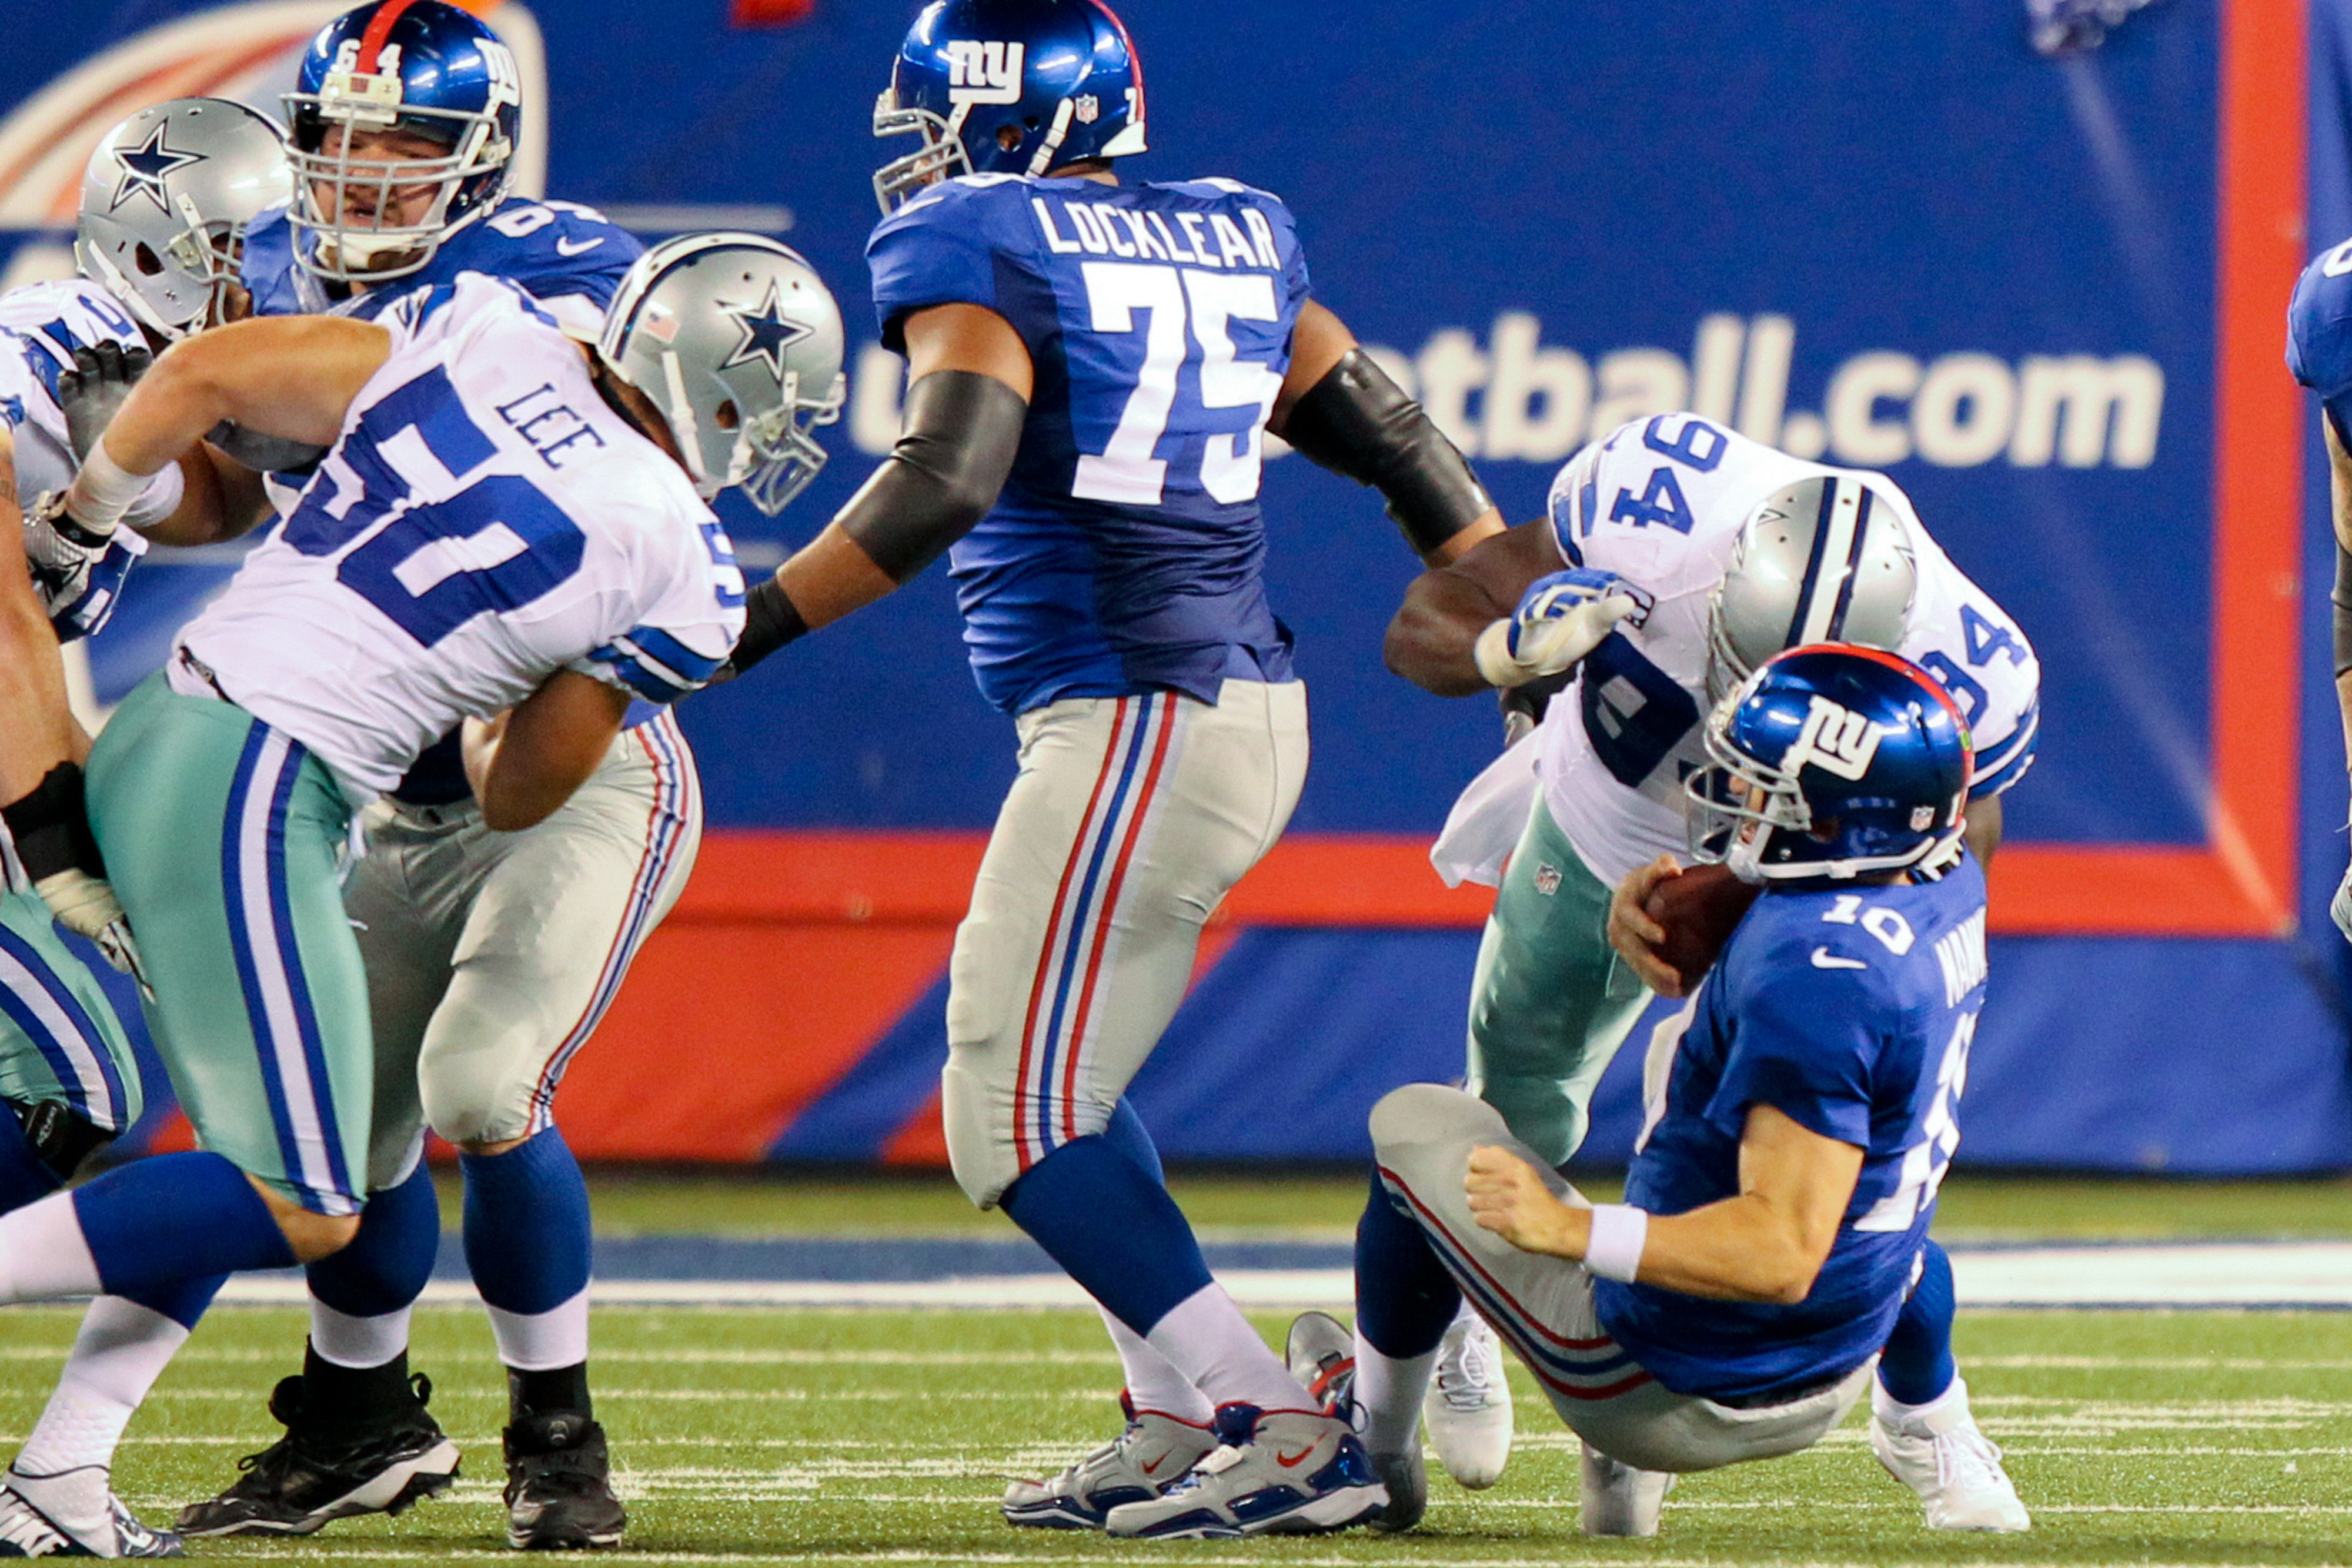 Sep 5, 2012; East Rutherford, NJ, USA;  New York Giants quarterback Eli Manning (10) gets sacked by Dallas Cowboys linebacker DeMarcus Ware (94) during the second quarter at MetLife Stadium. Mandatory Credit: Anthony Gruppuso-US PRESSWIRE